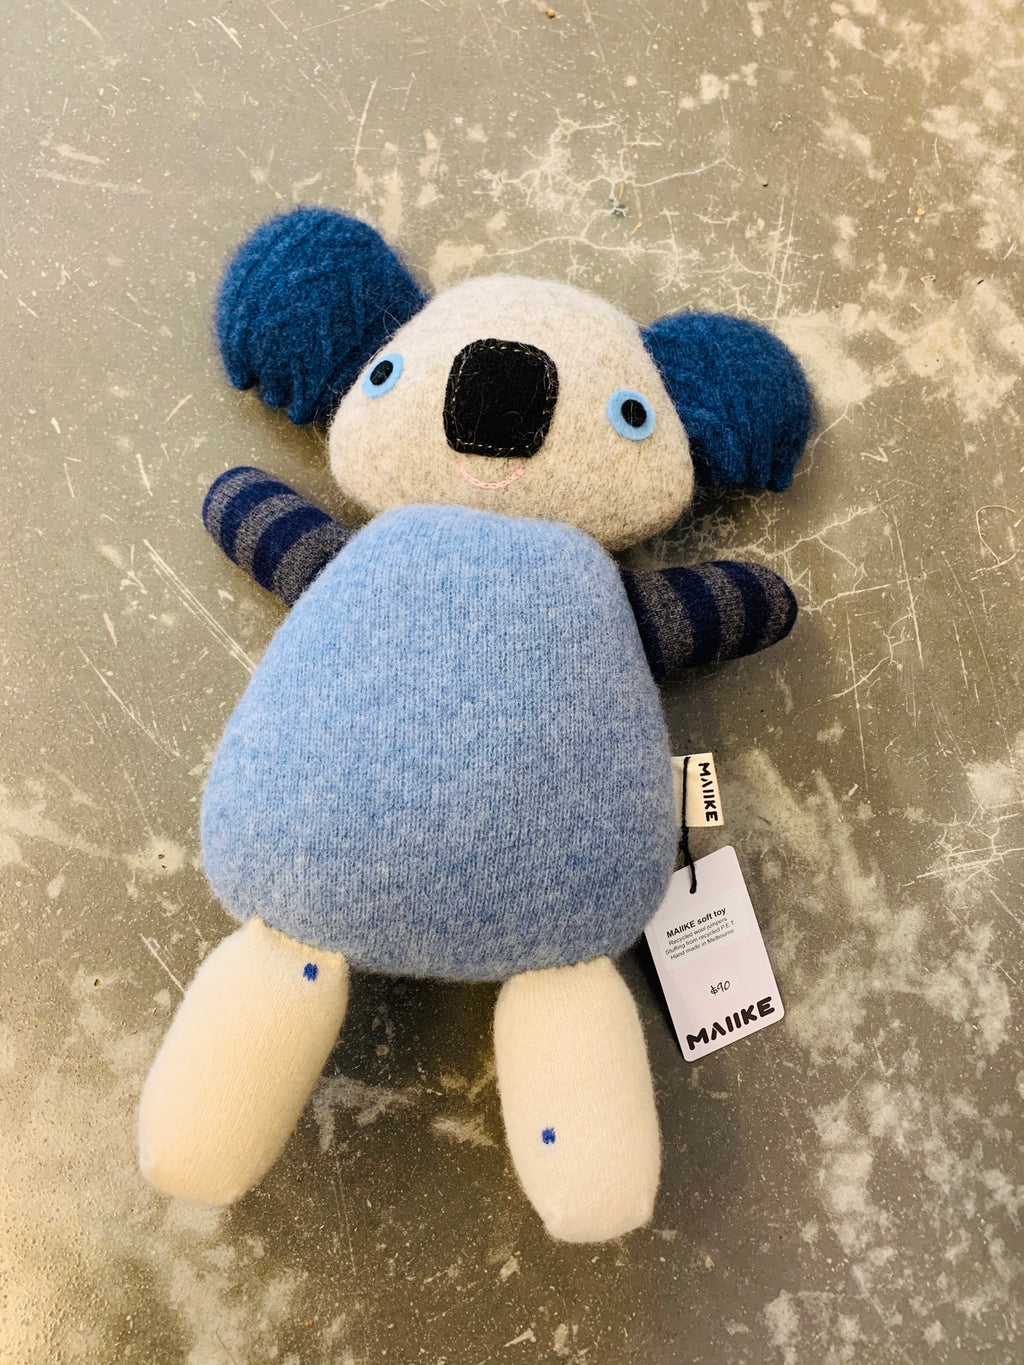 Maiike koala in Blue cream by Aly Peel